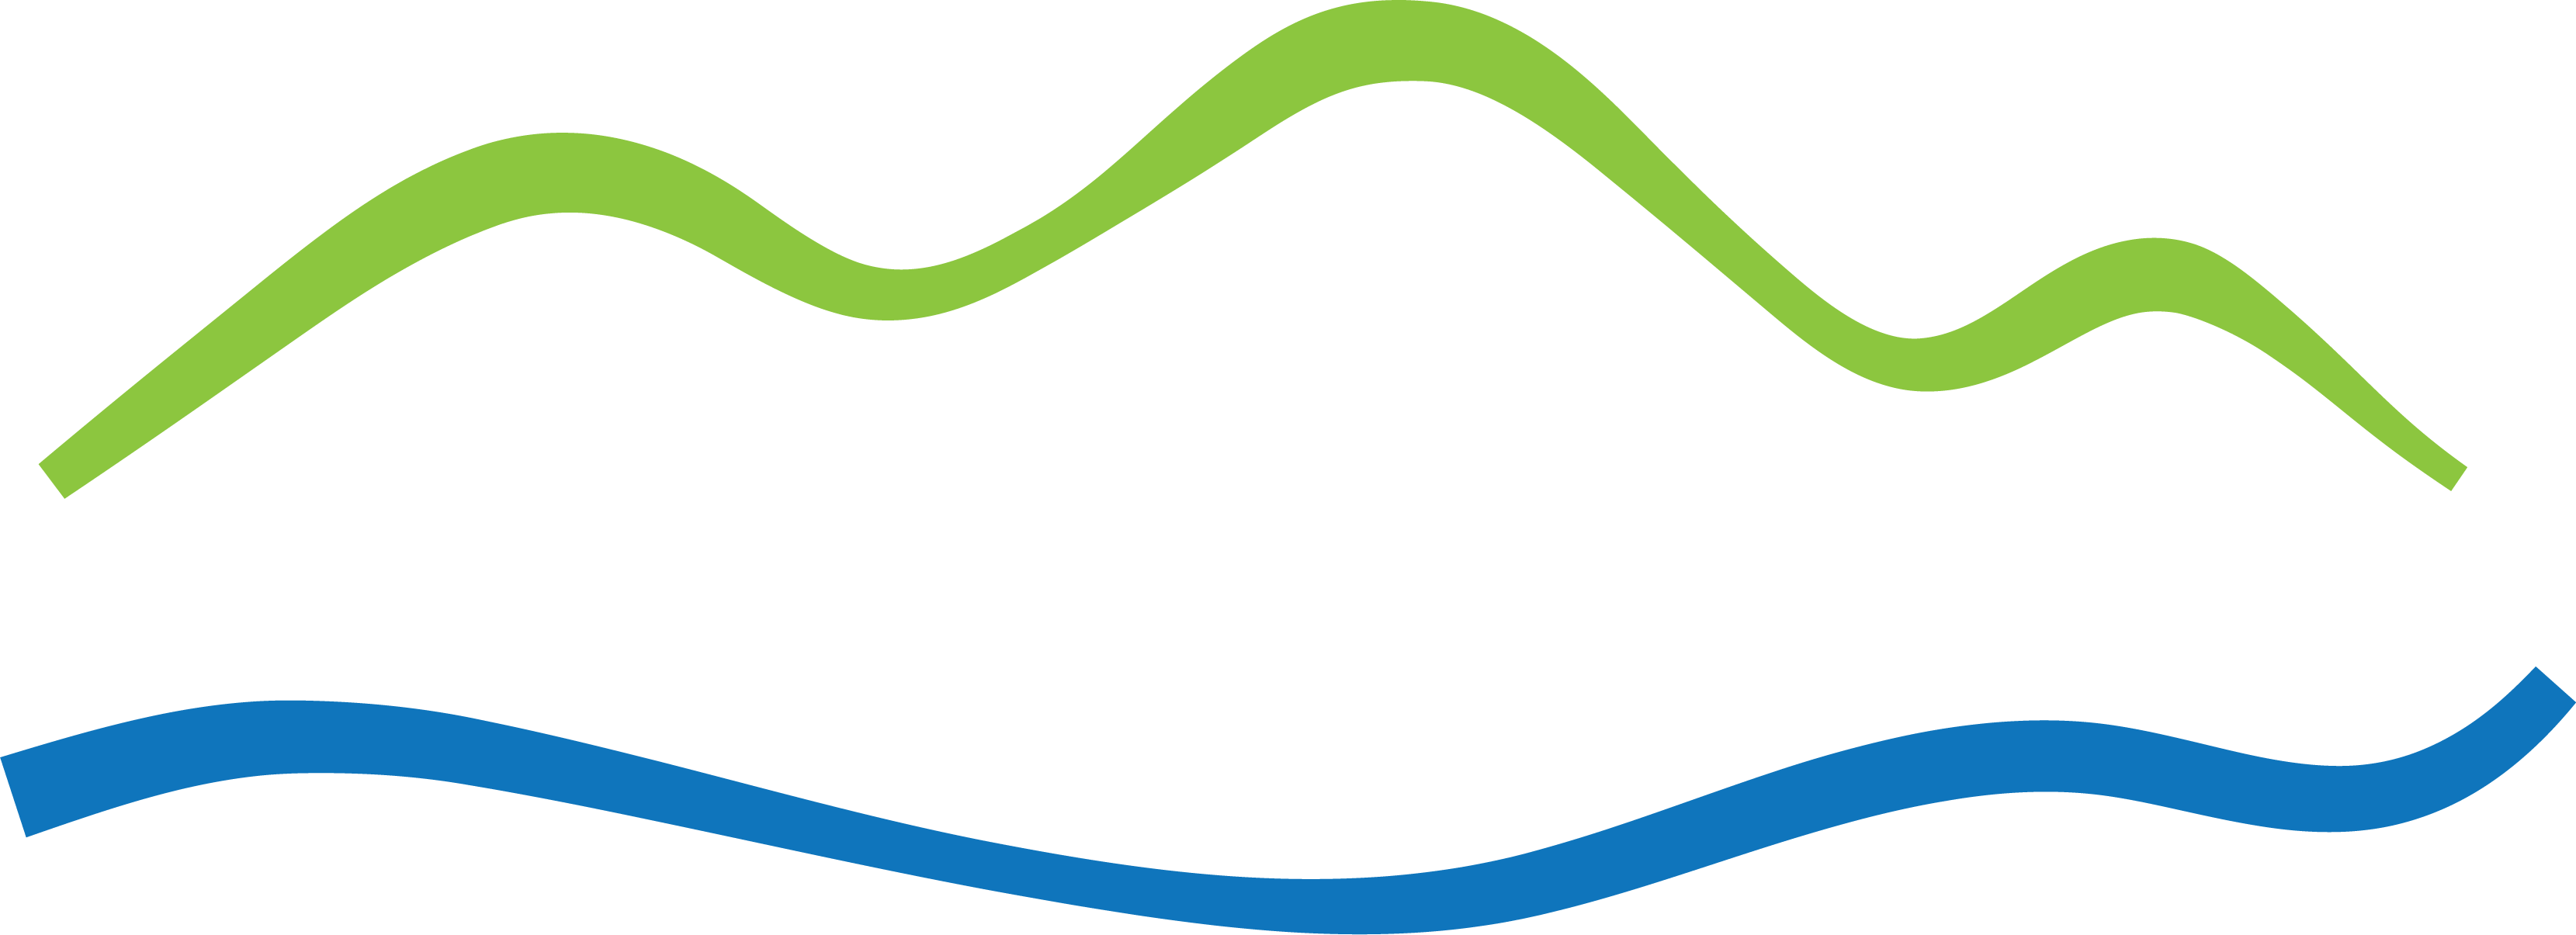 Upper Murrumbidgee Catchment Network logo